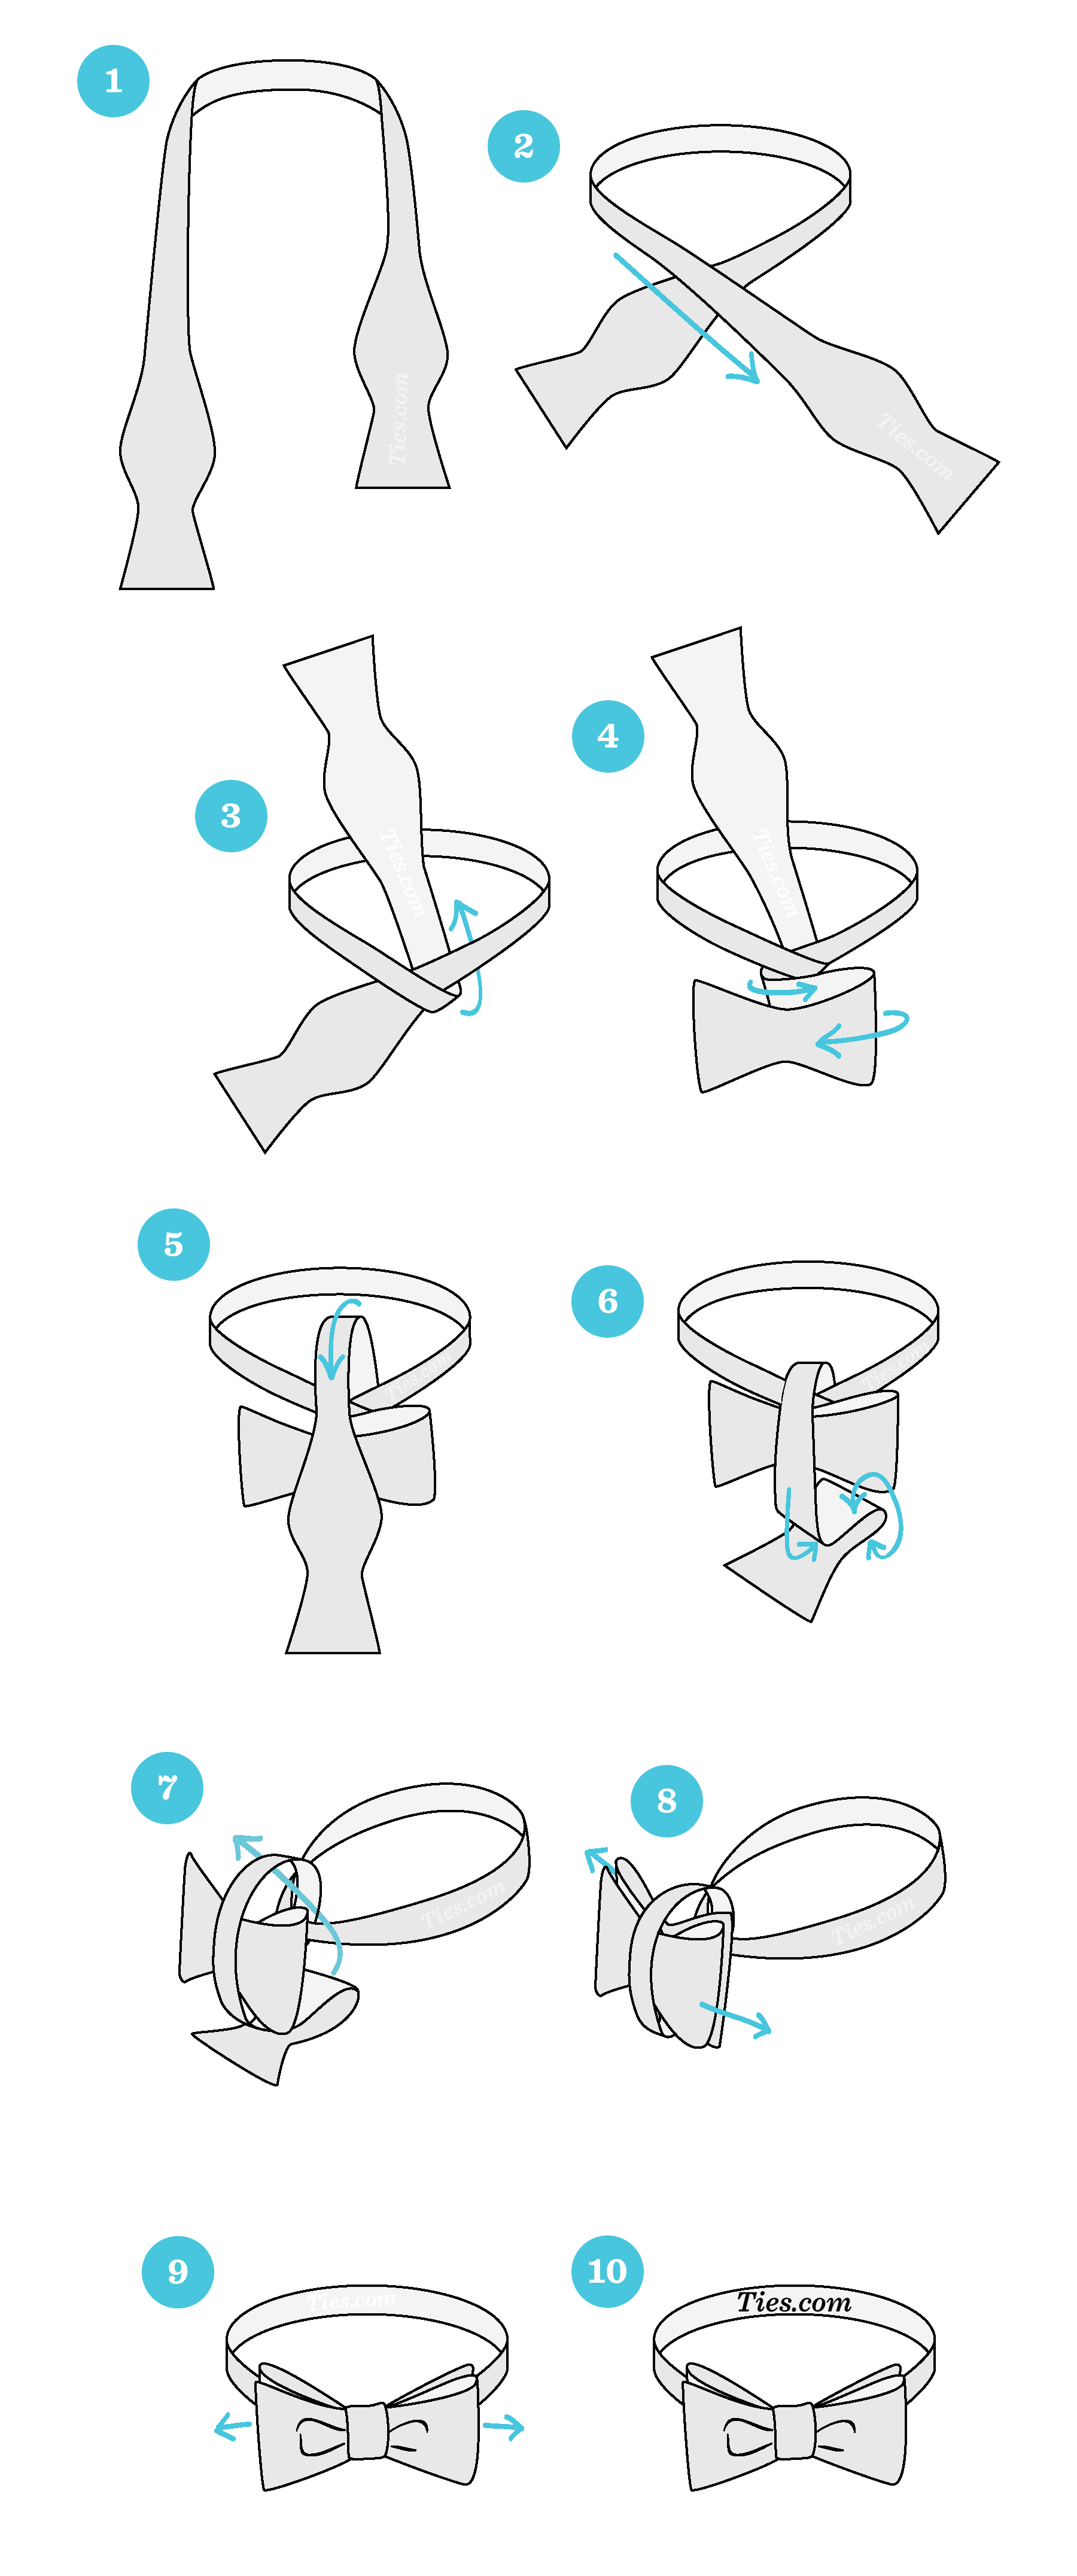 How to tie a bow tie start with the bowtie lying face up. adjust the bowtie so right side is  shorter CNPKOTX